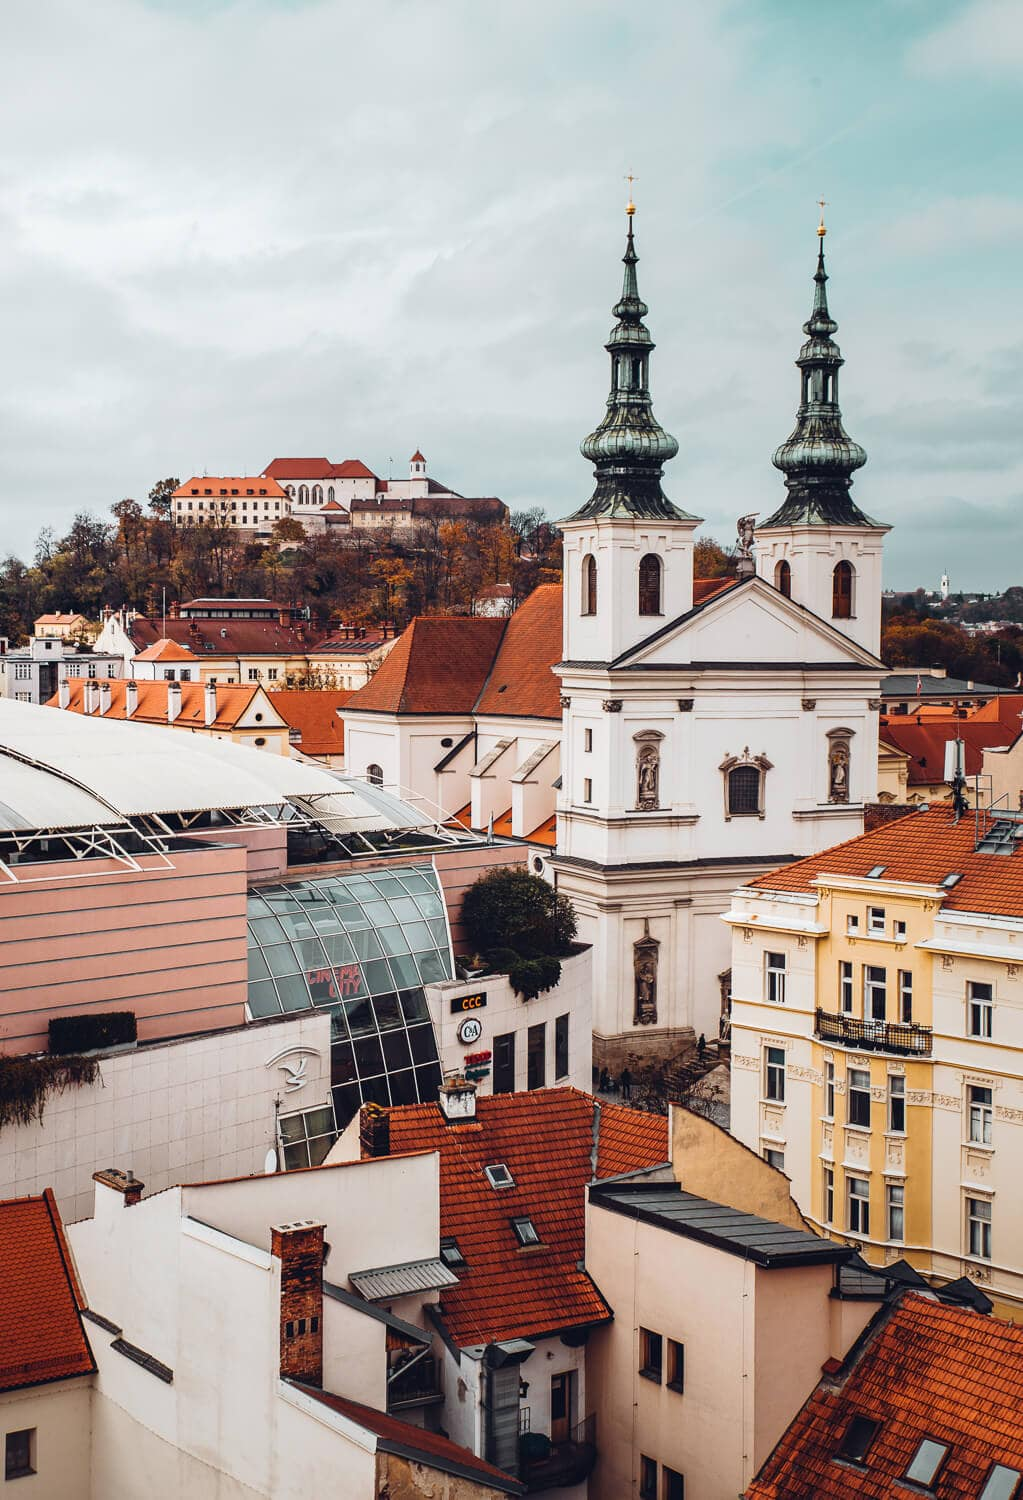 From crypts to nuclear fallout shelters, a labyrinth under the vegetable market and where to find the best views, keep reading to discover the top 10 things to do in Brno, Czech Republic